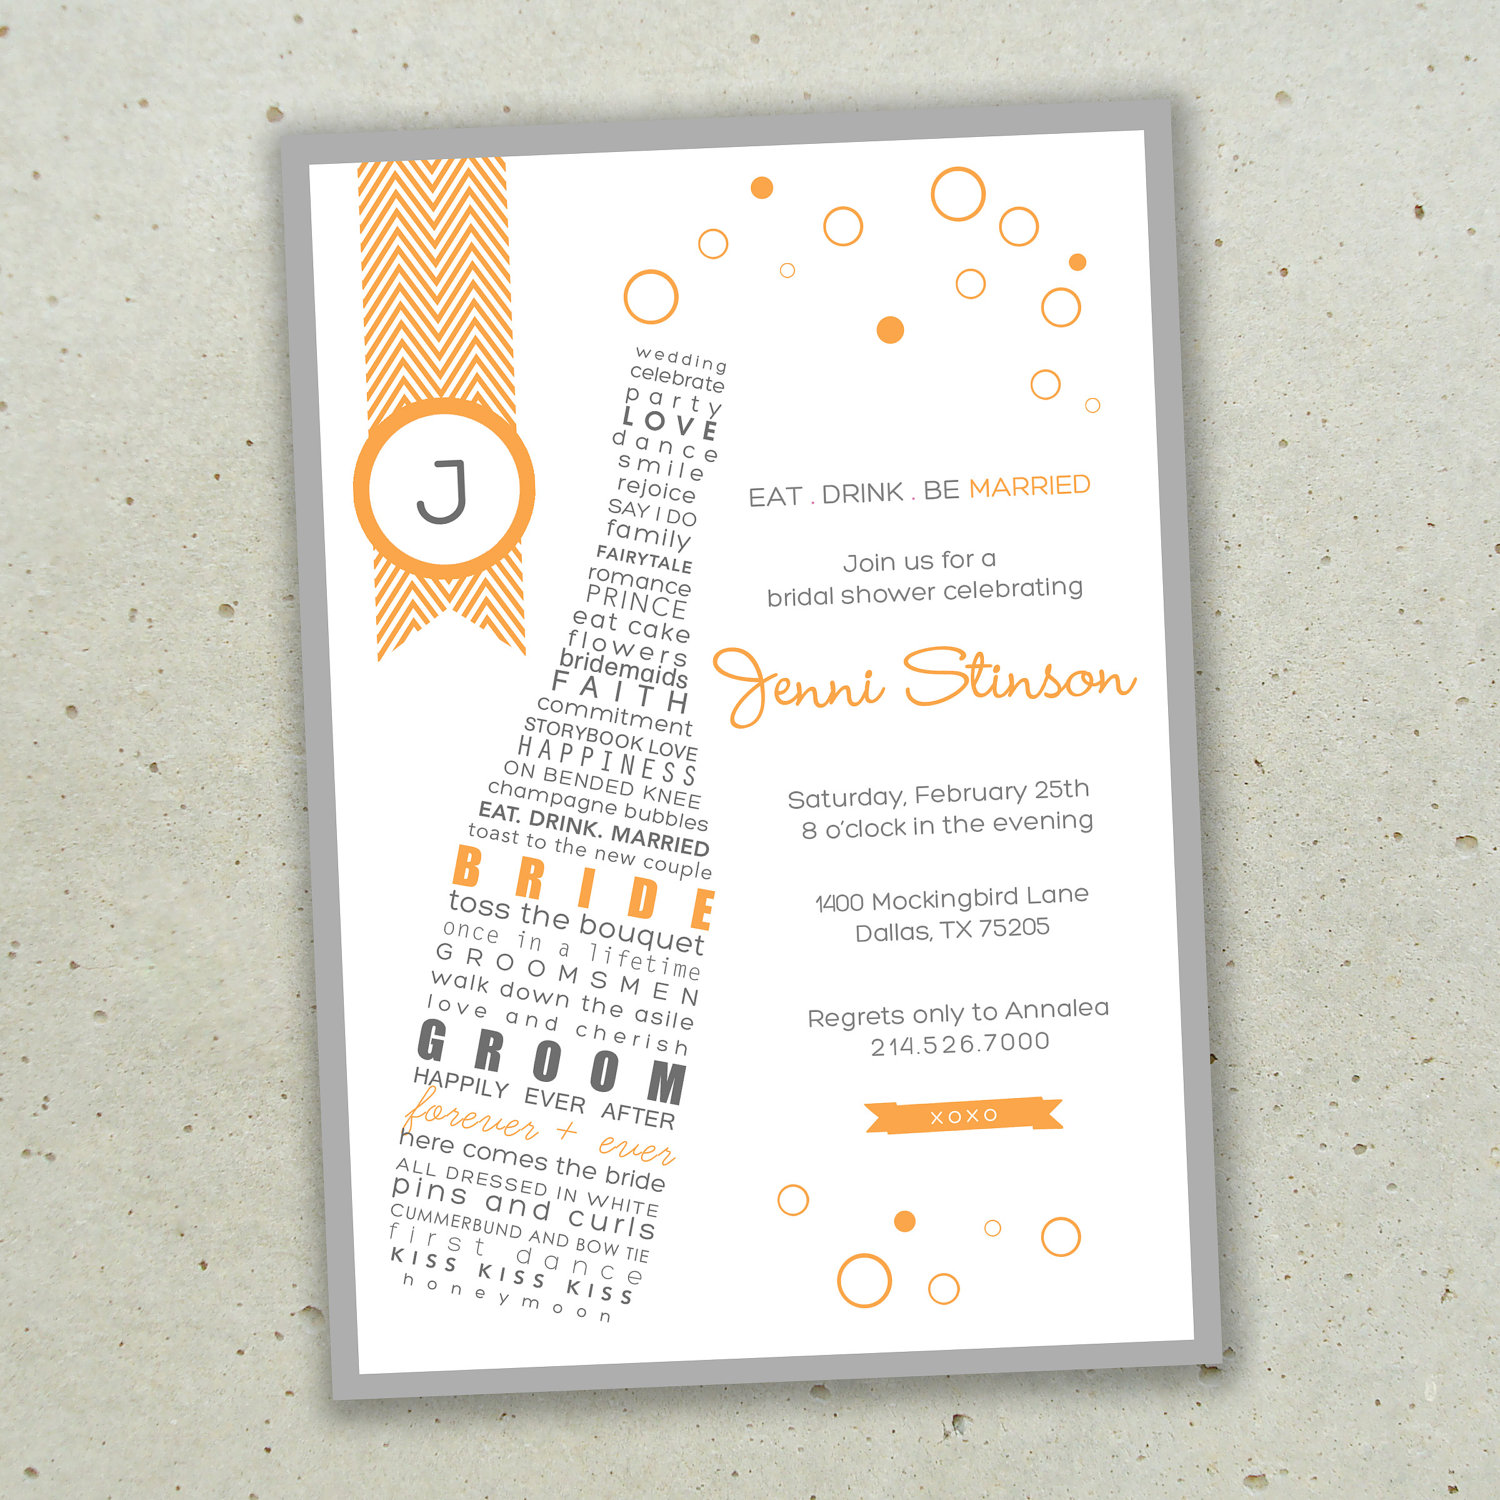 Champagne-wedding-invitations-modern-gold-grey.original